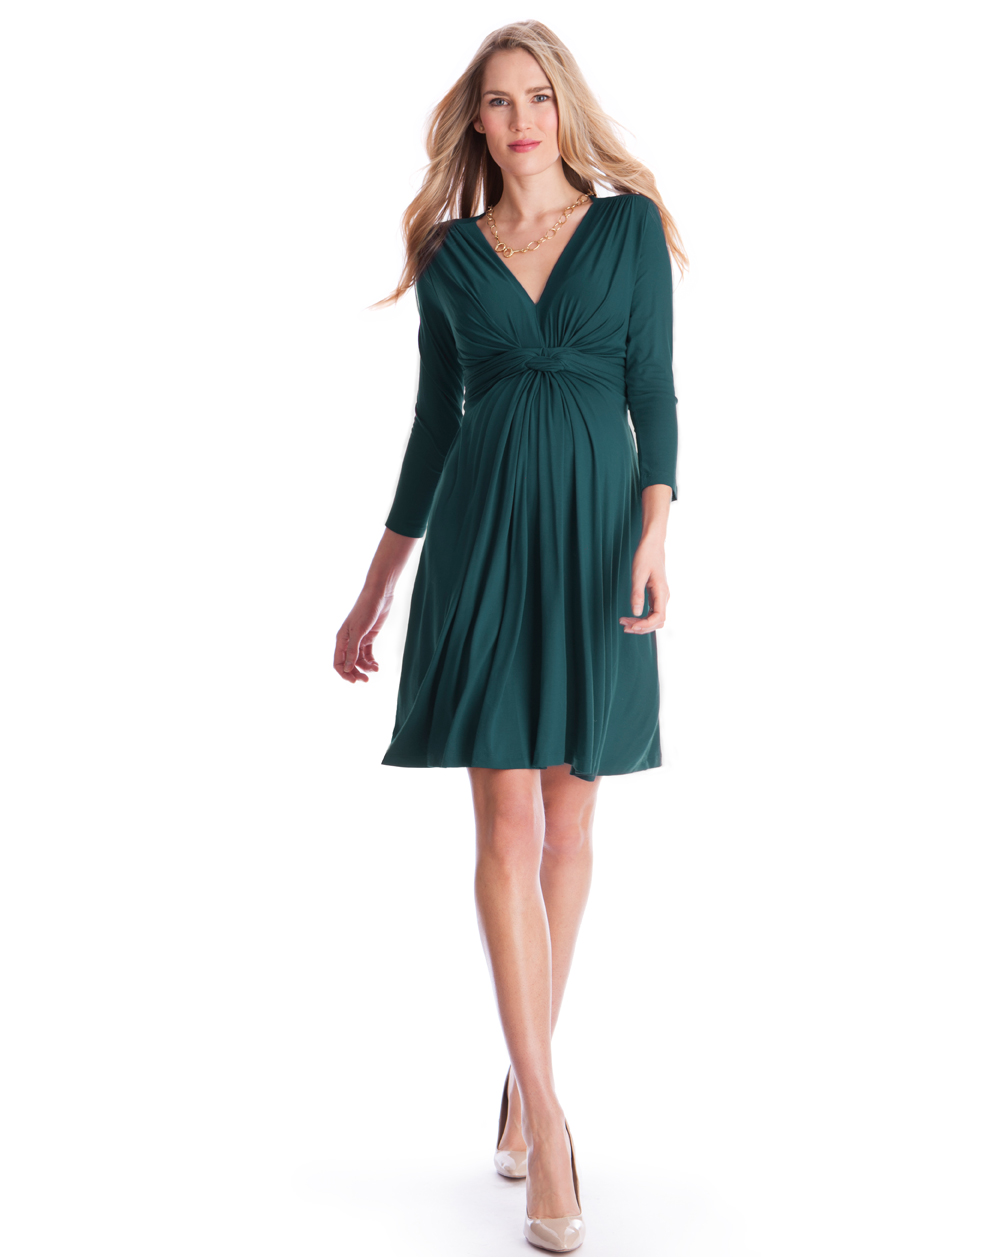 Maternity clothes rental affordable pregnancy wear dress clothes jolene 34 sleeve dark green designed by seraphine ombrellifo Image collections